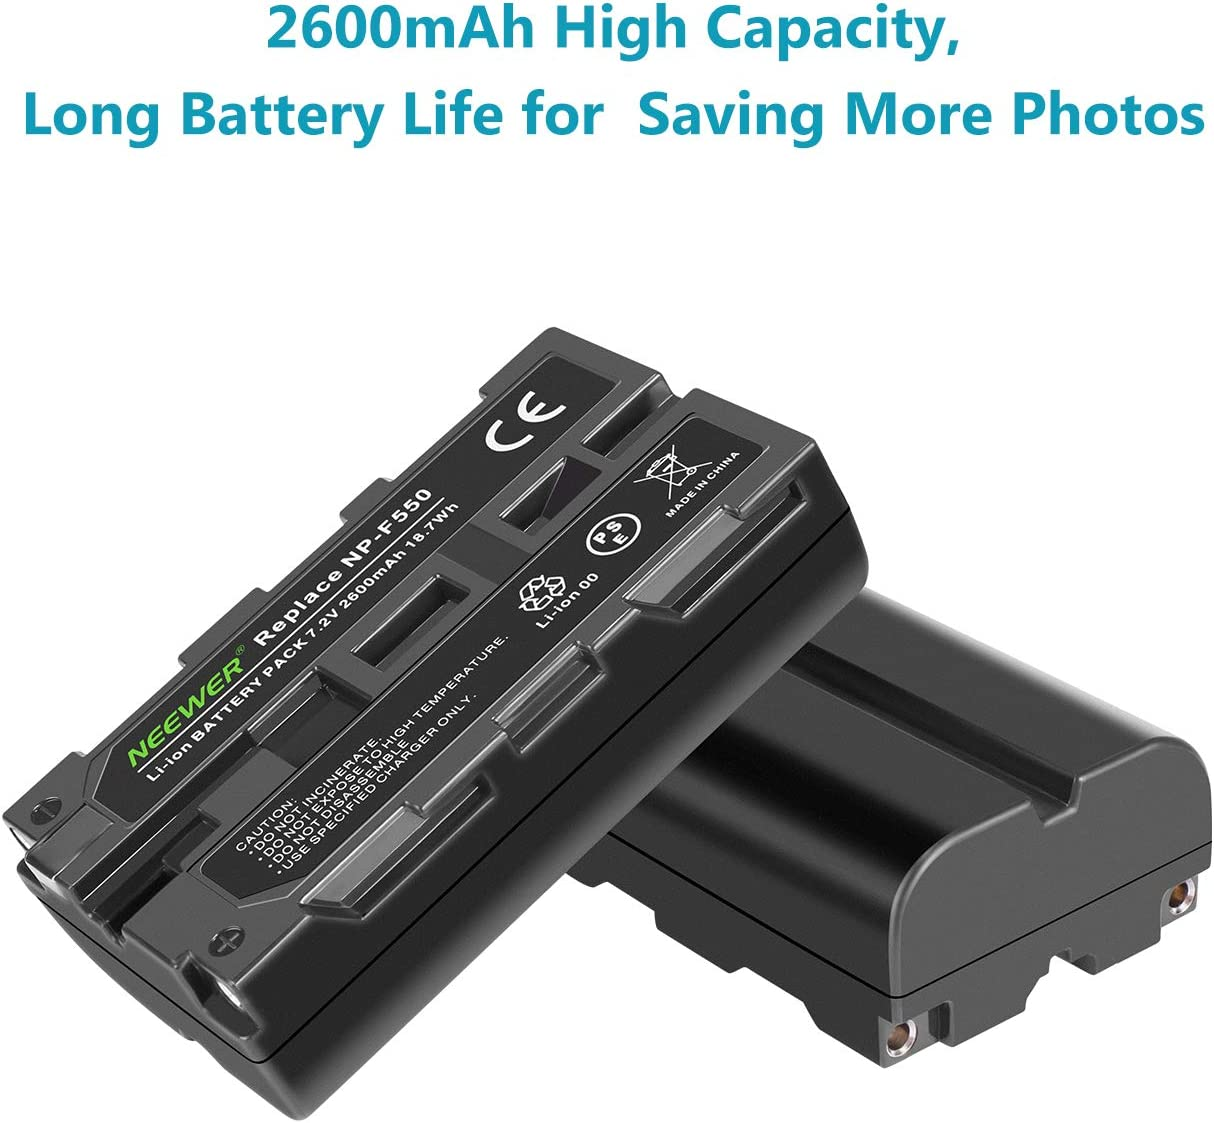 2-Pack 2600 mAh Replacement Camera Batteries, Micro USB and Type-C Input Dual Charger Neewer NP-F550 Battery Charger Set for Sony NP-F970 F750 F960 F530 F570 CCD-SC55 TR516 TR716 and More